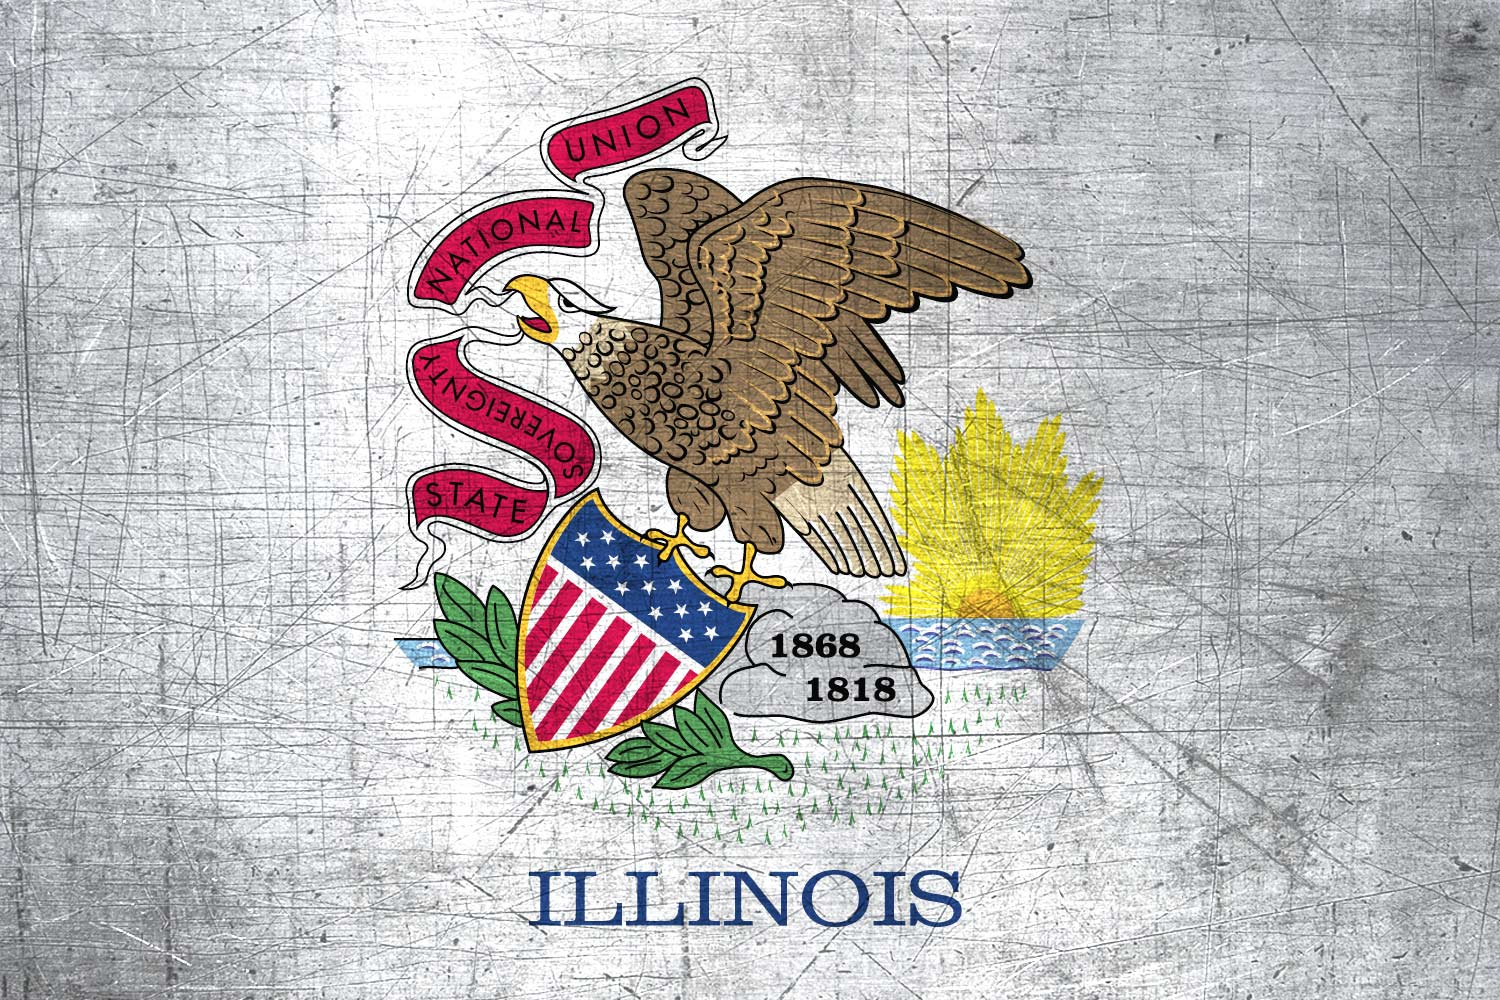 Illinois-Flag.jpg